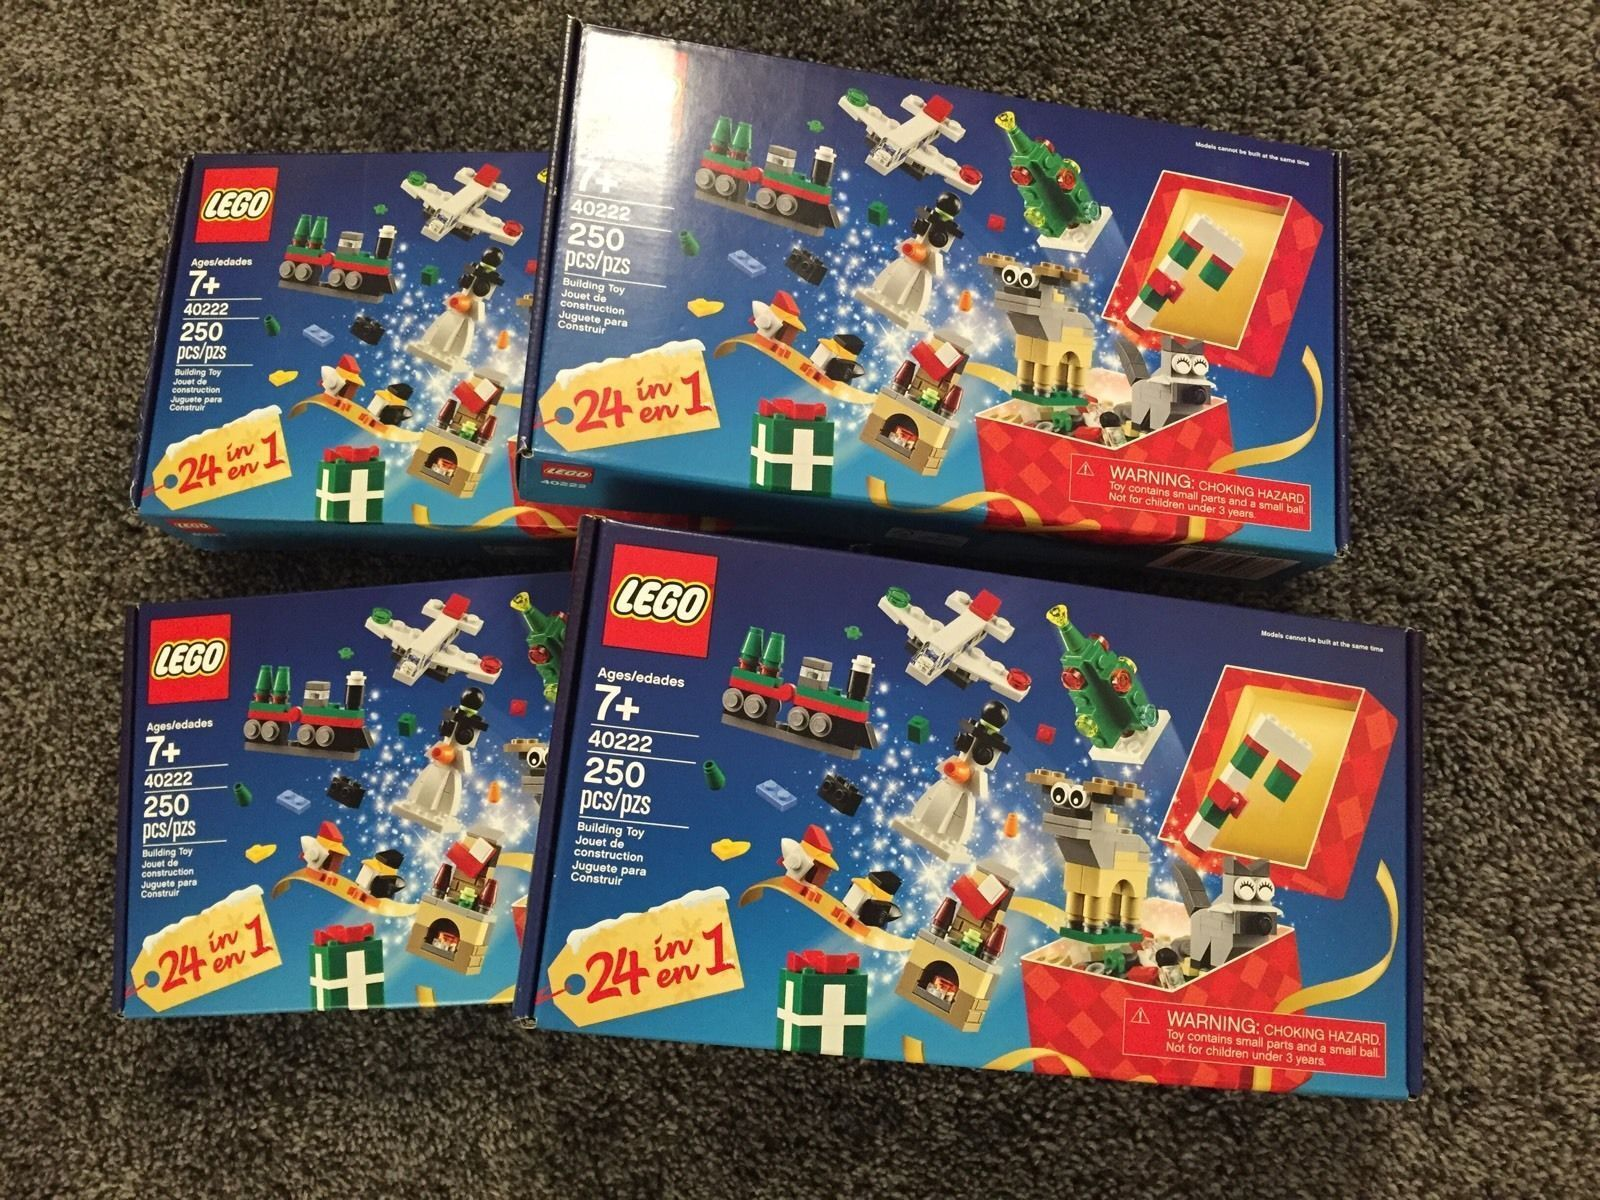 4x Lego 40222 Promotional Exclusive 24-In-1 Christmas Countdown Set 4 Sets